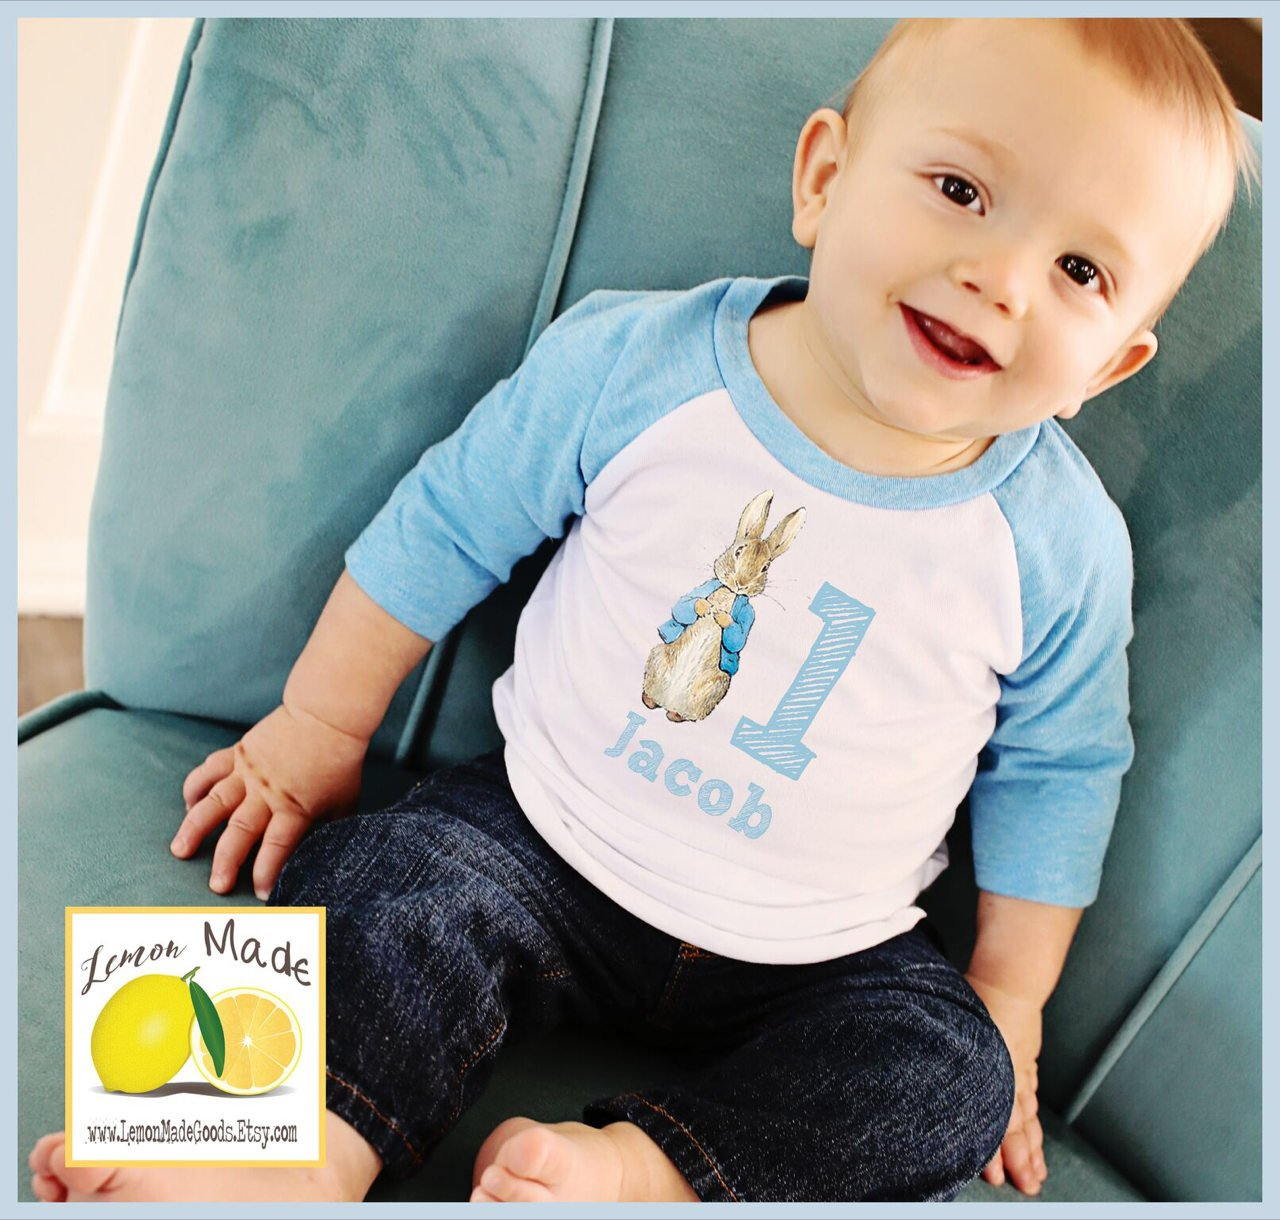 Peter Rabbit shirt with name and birthday digit